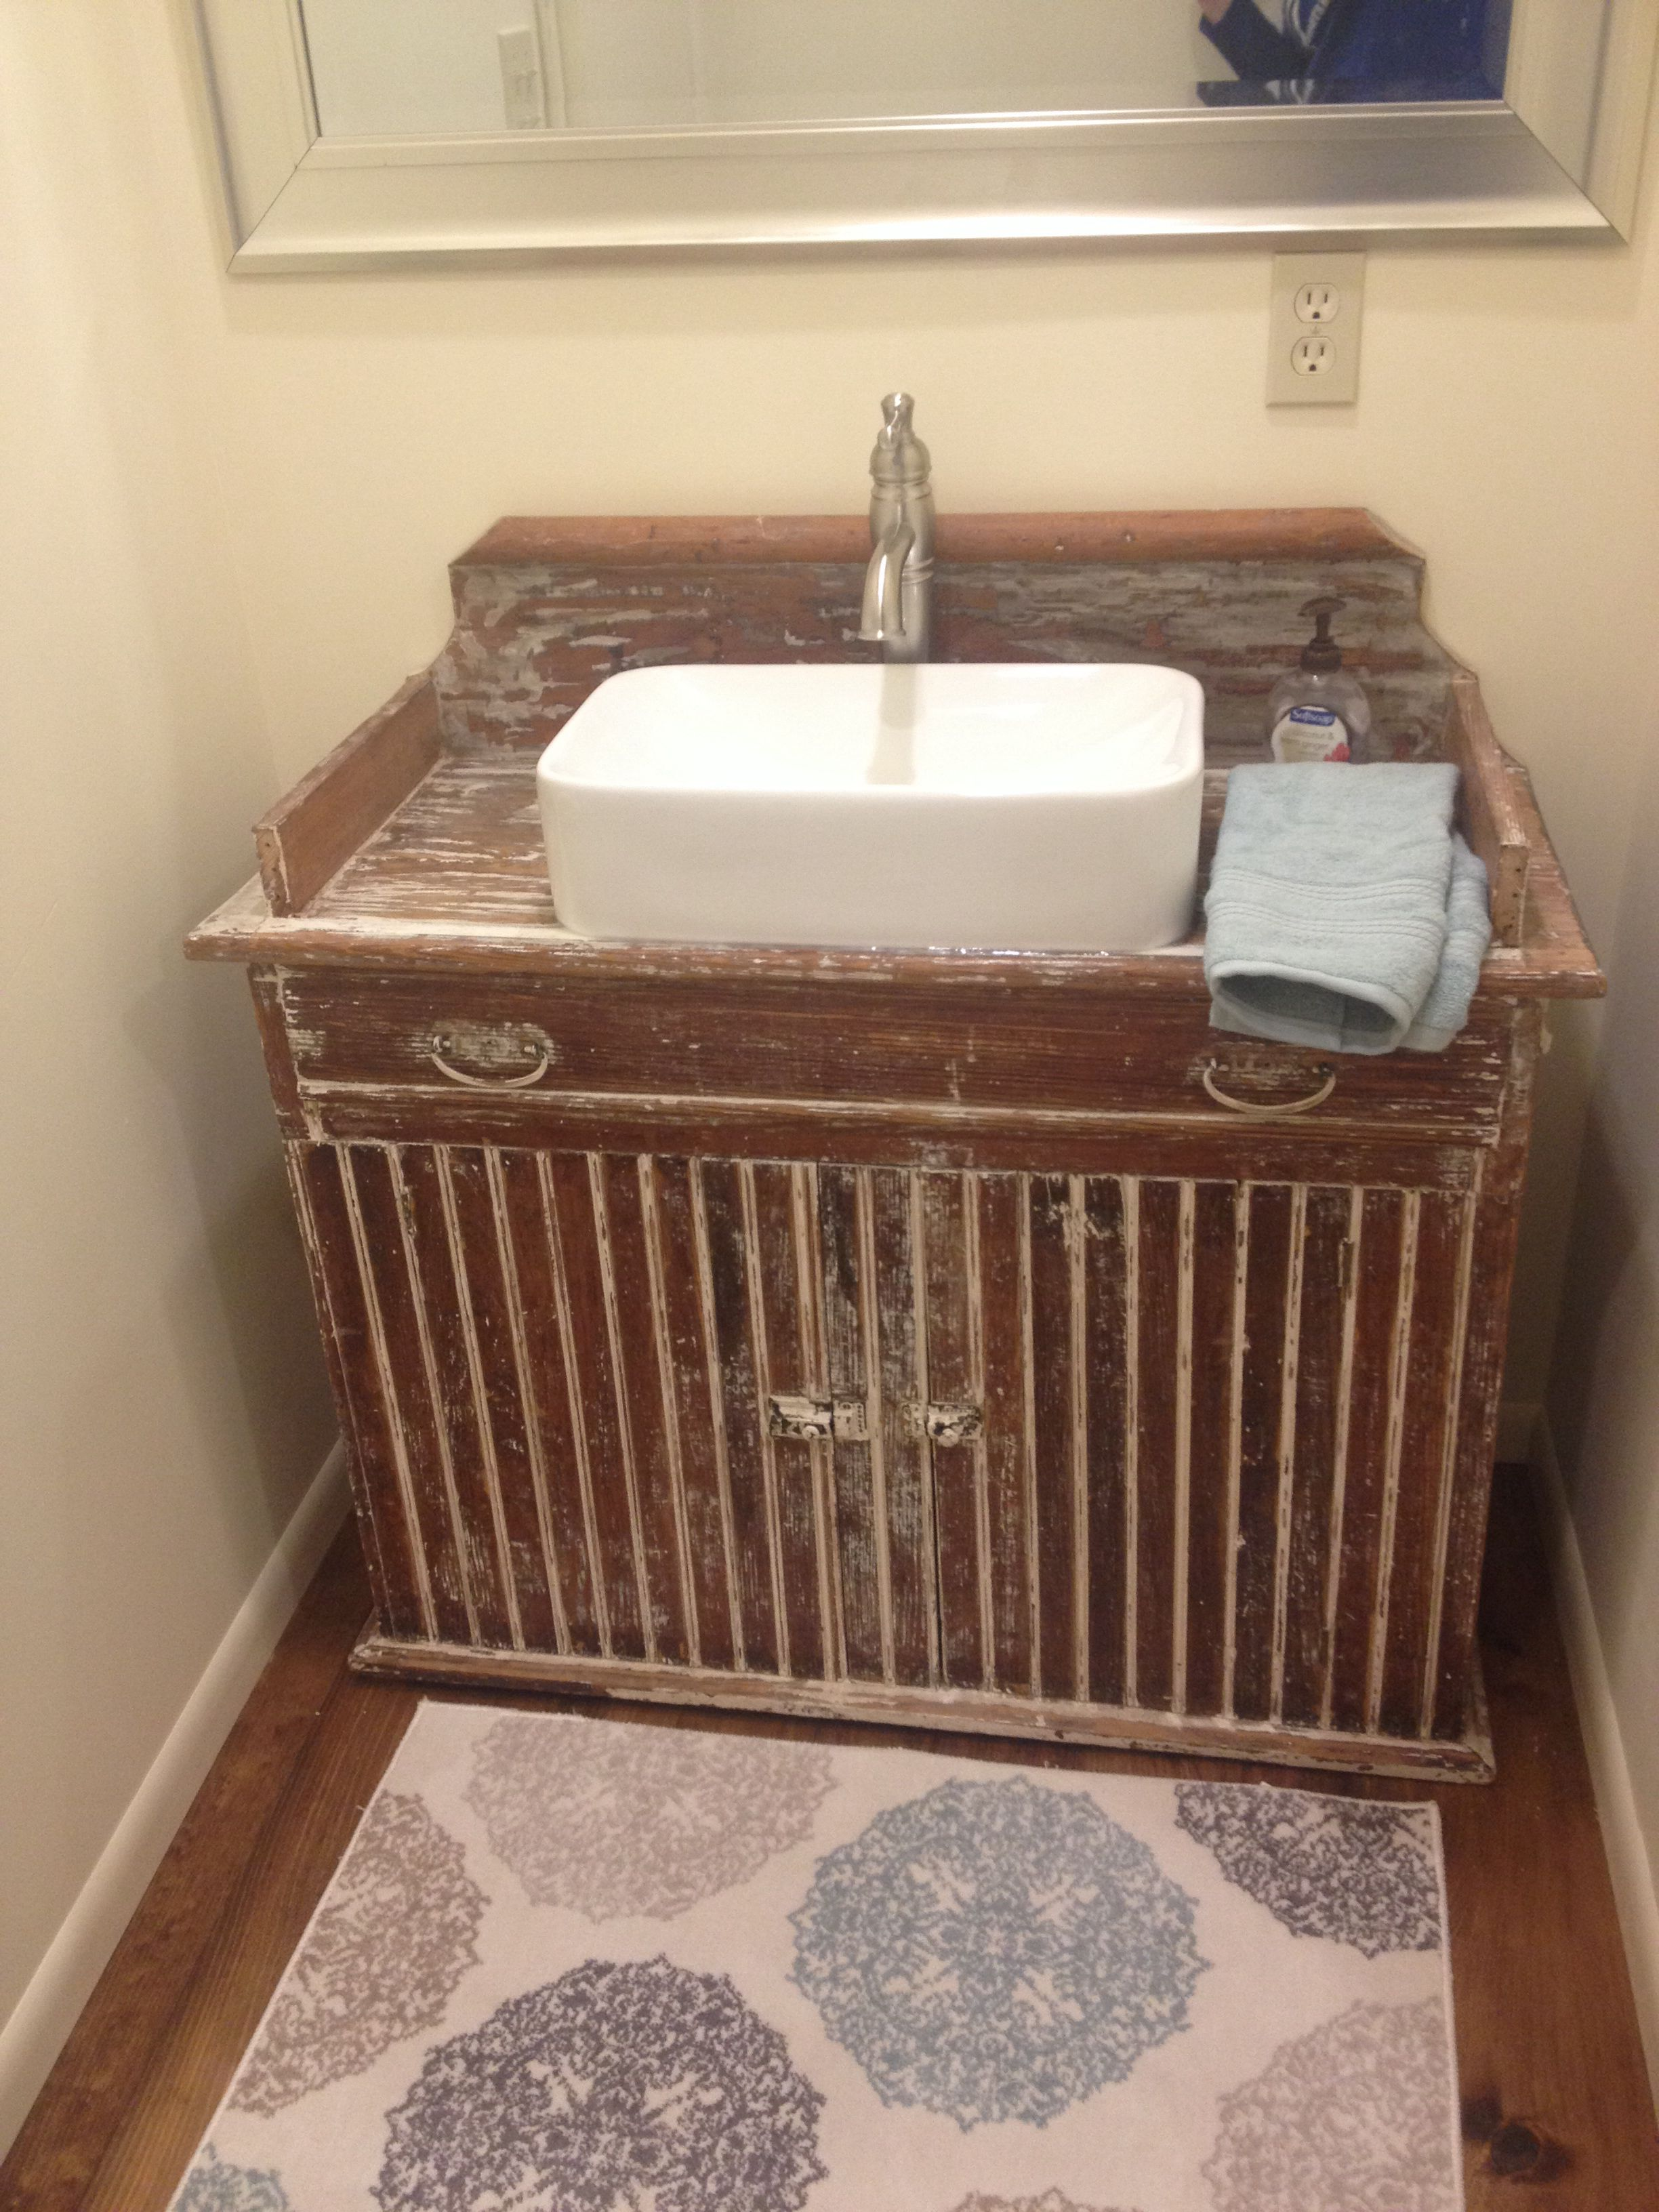 A Primitive Dry Sink We Made Into A Bathroom Vanity, Vessel Sink,